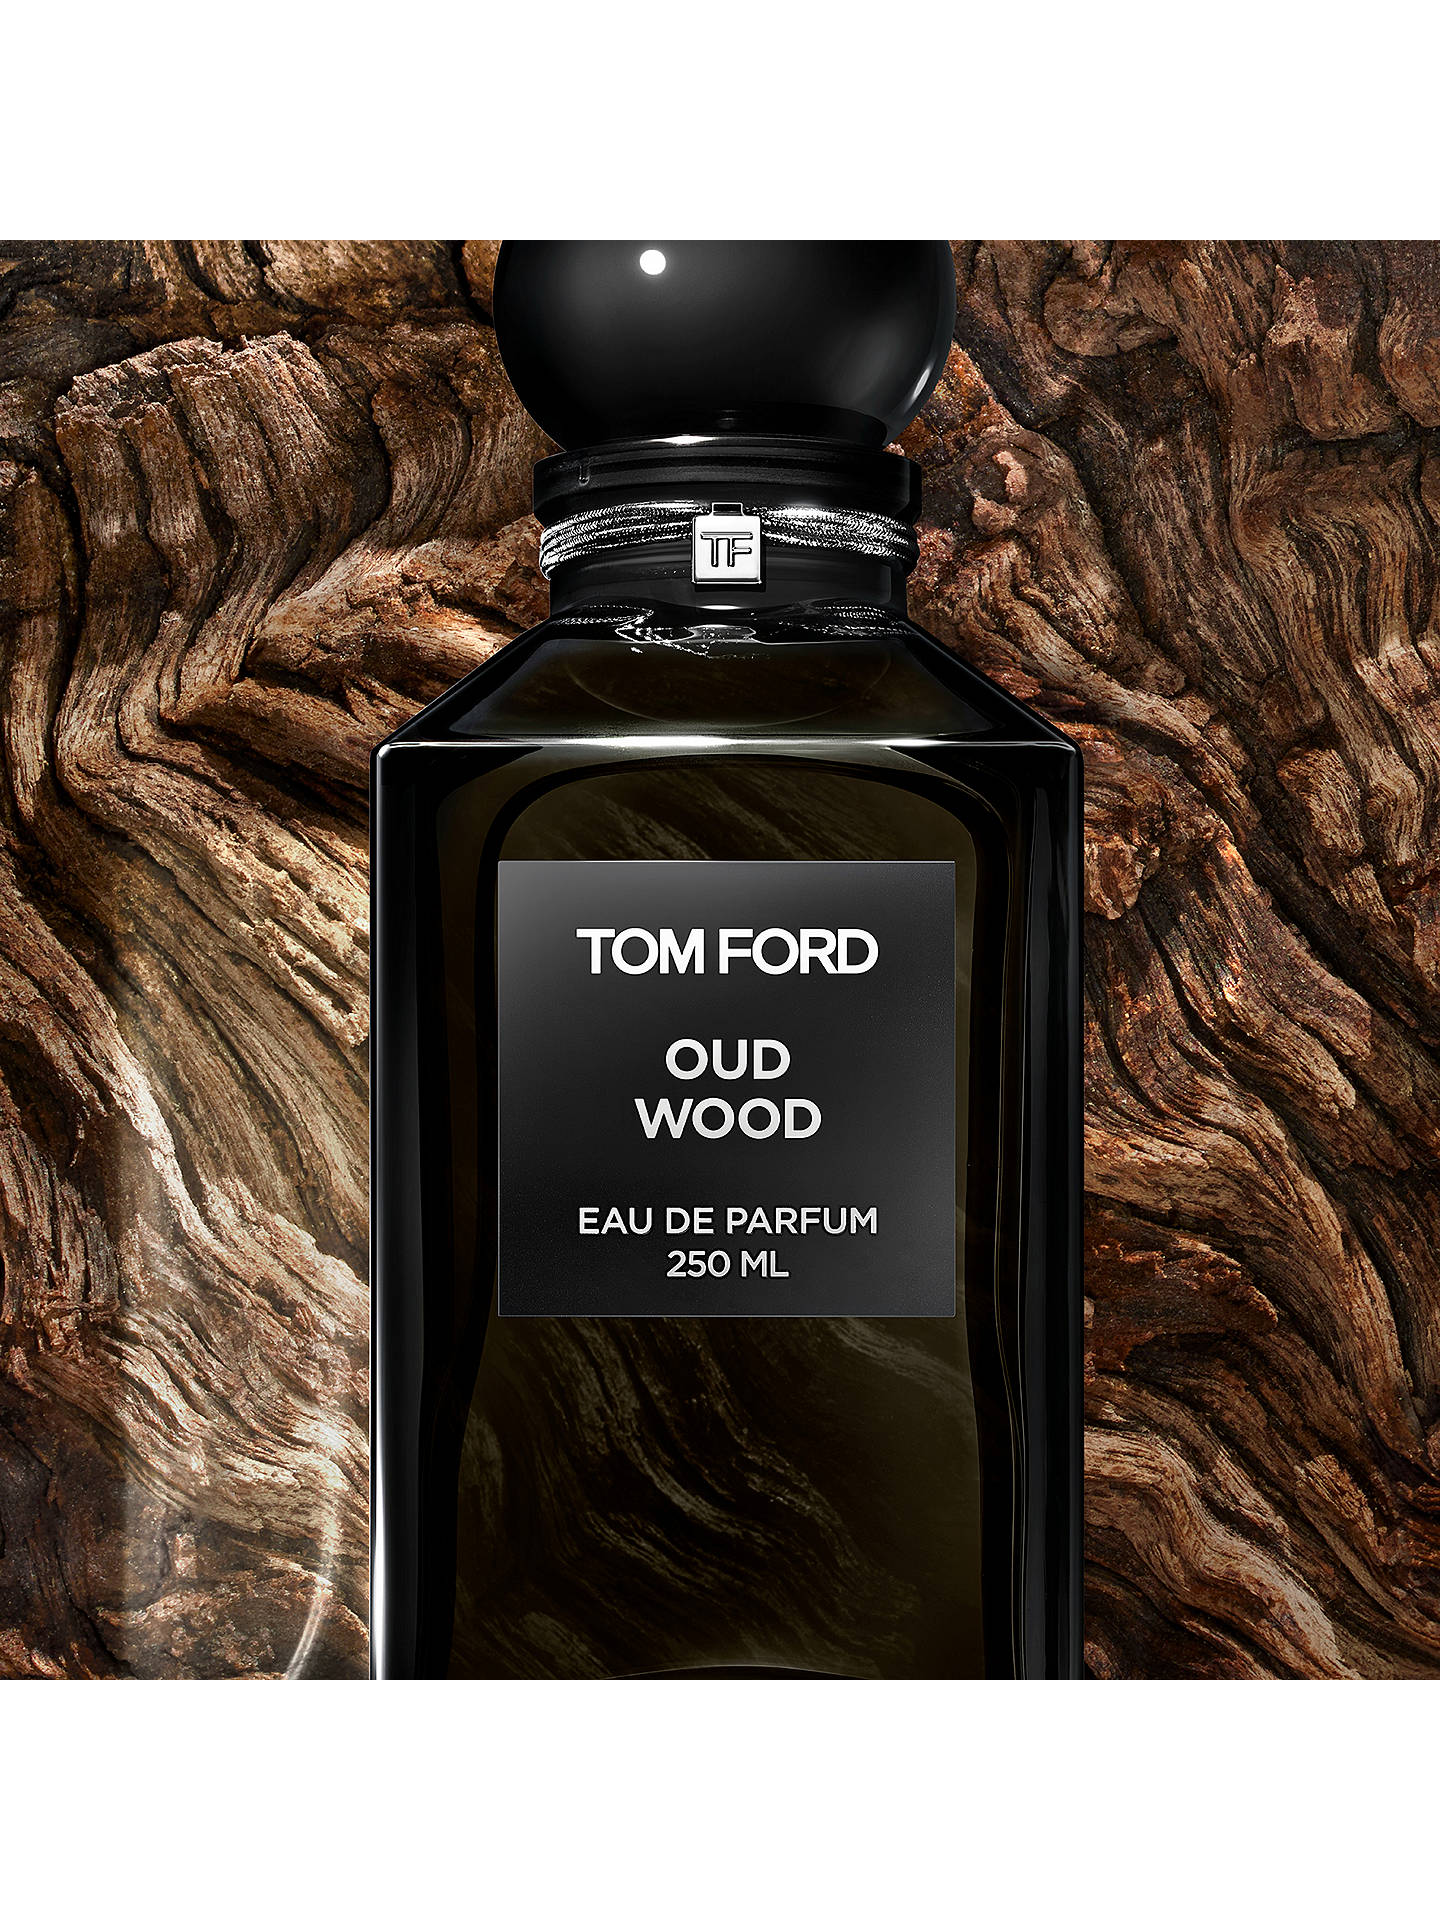 TOM FORD Private Blend Oud Wood Eau De Parfum, 250ml at John Lewis &  Partners